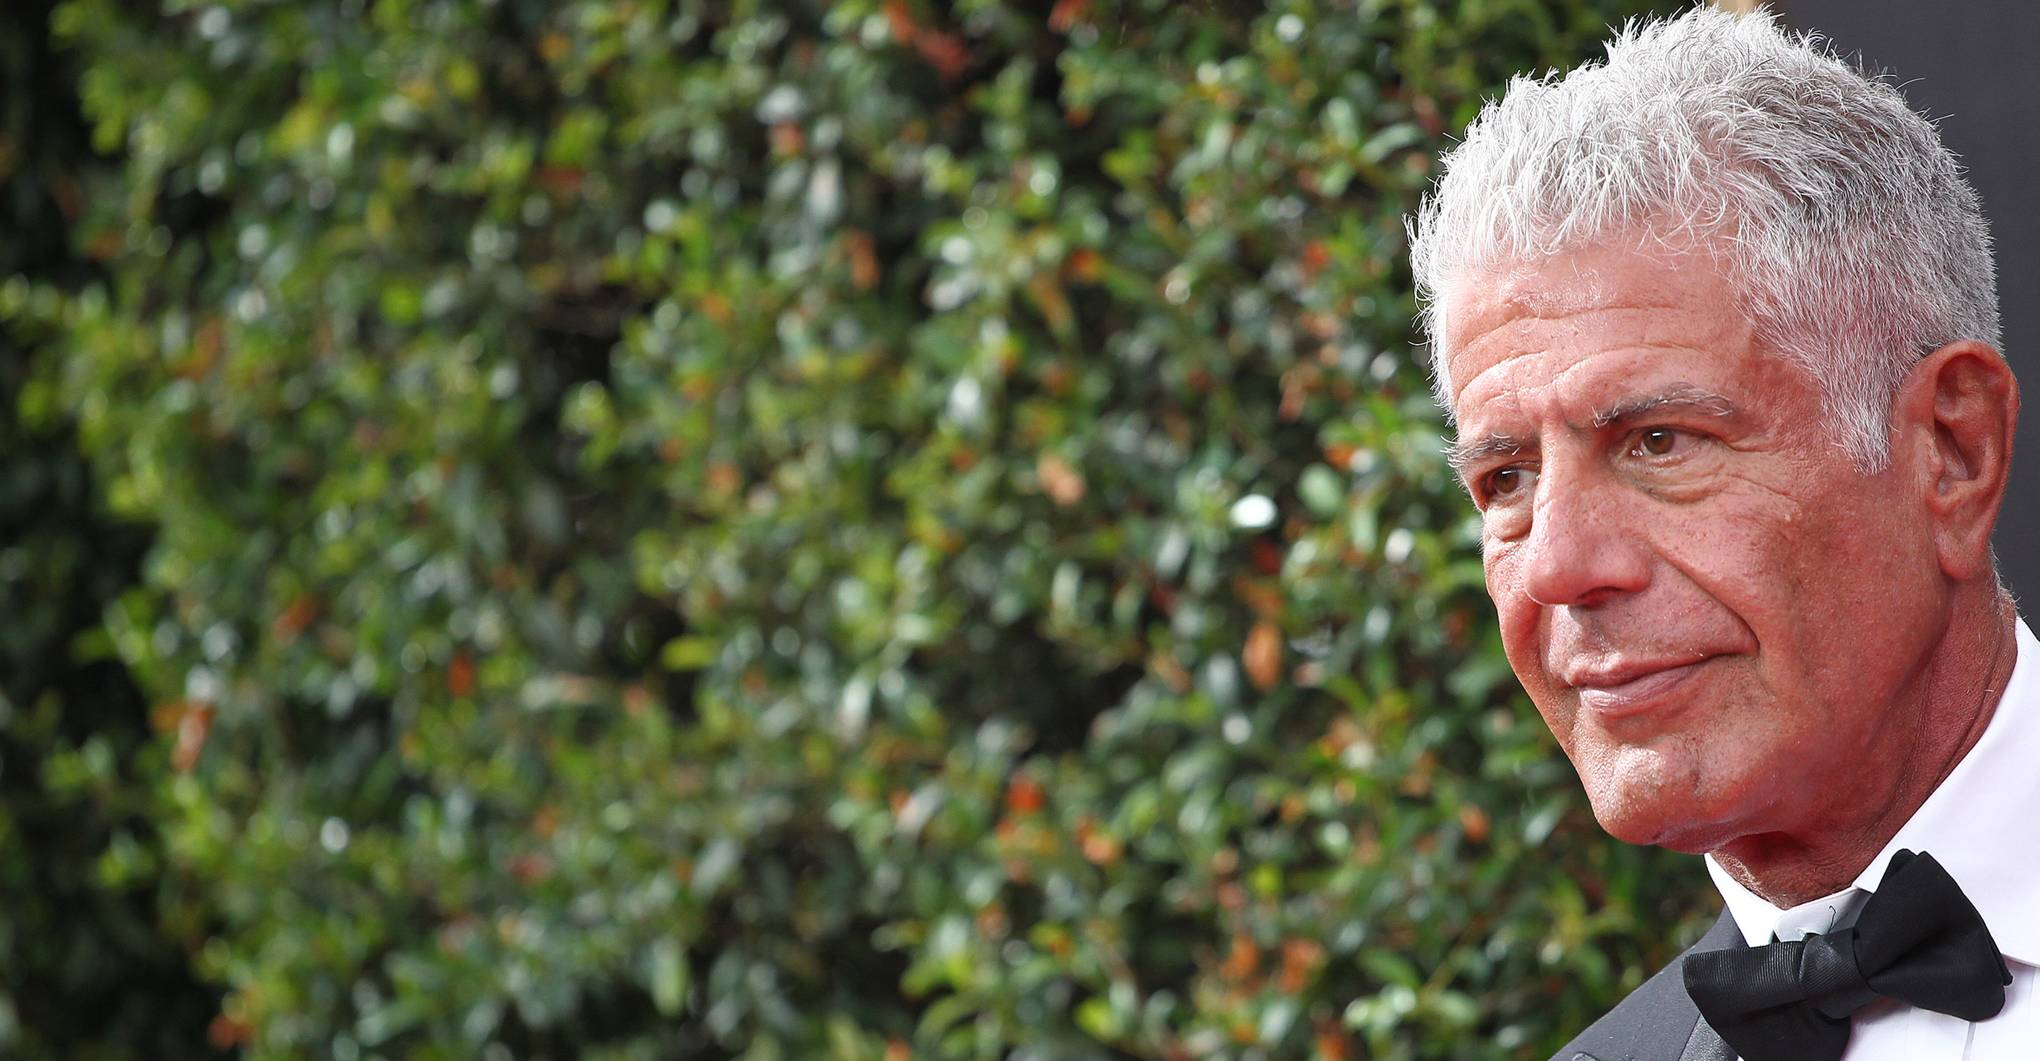 Anthony Bourdain's favourite foodie finds